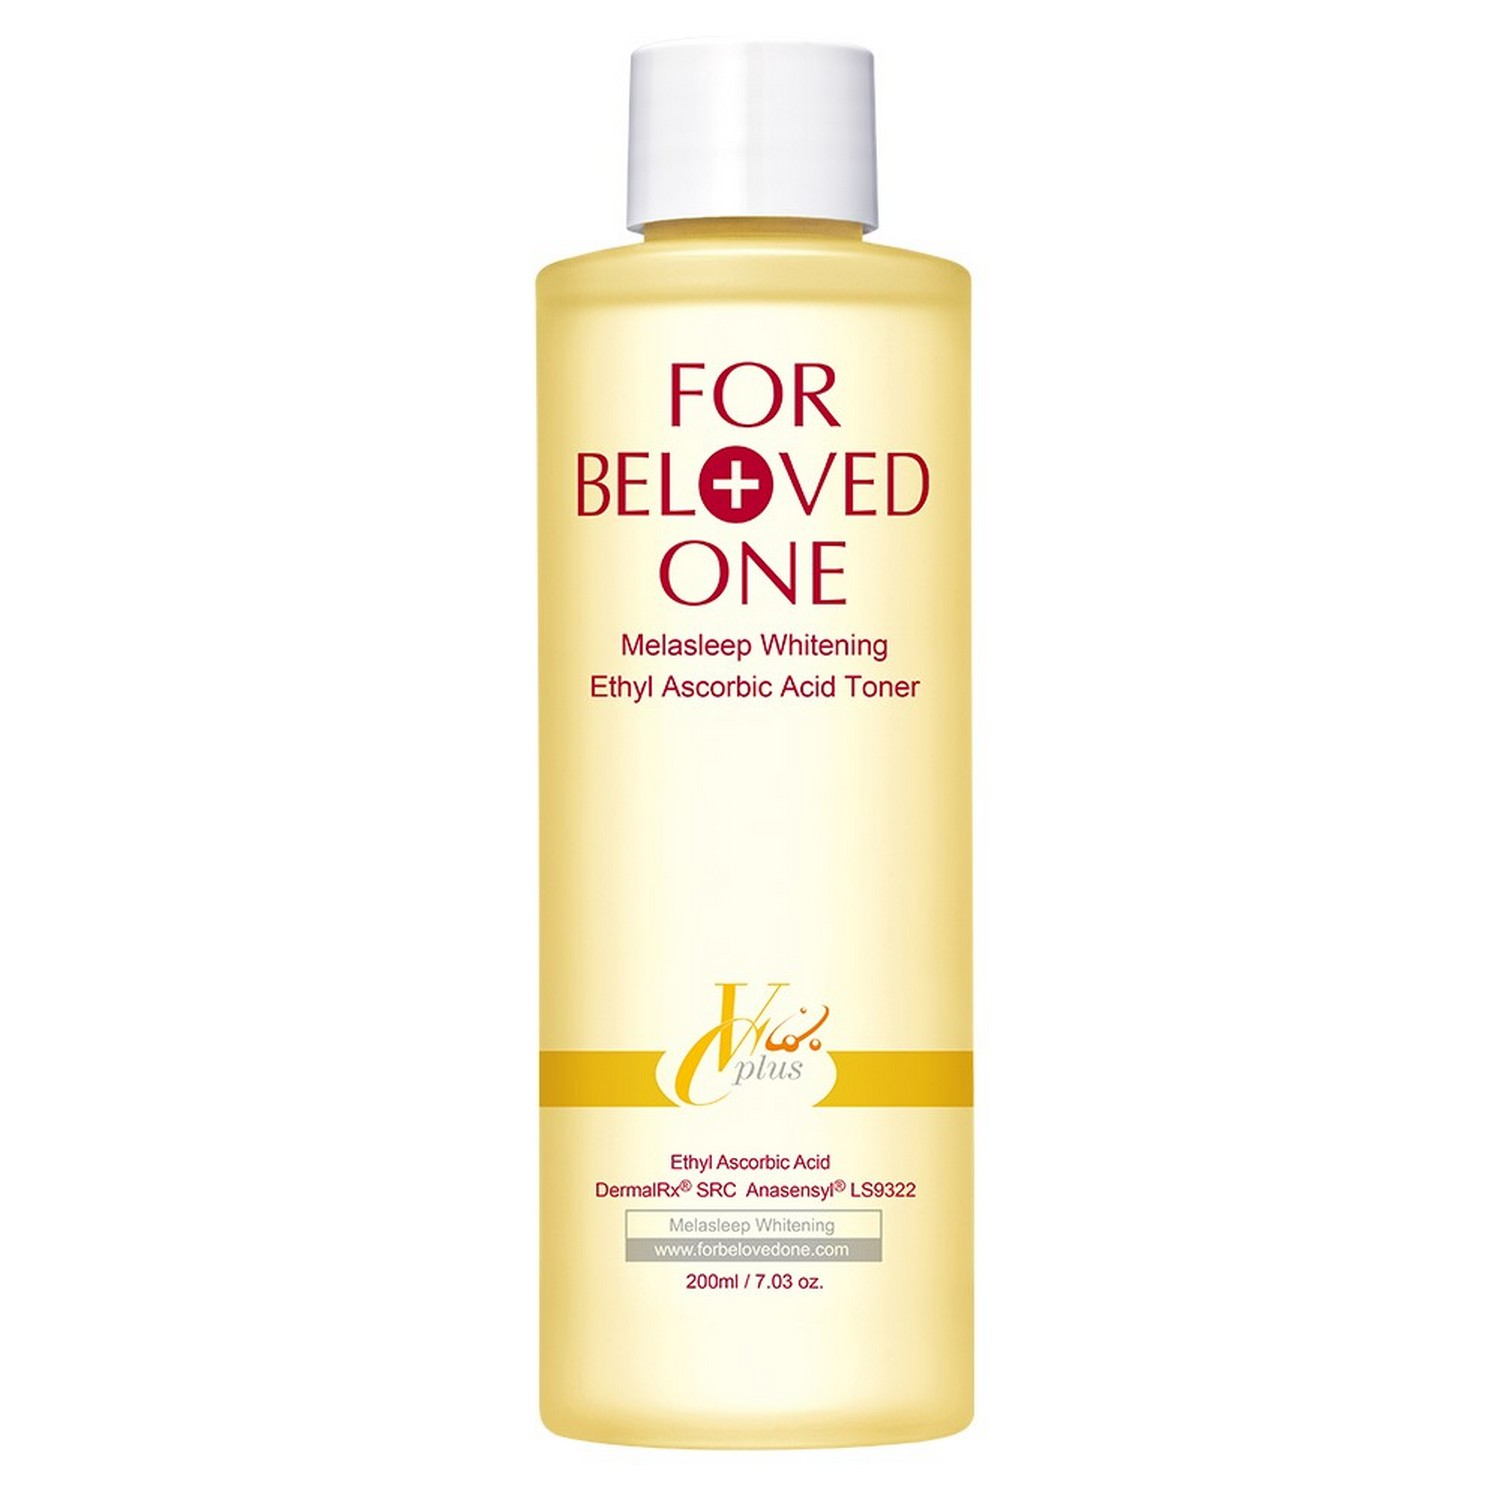 For Beloved One Melasleep Whitening Ethyl Ascorbic Acid Toner (200 ml / 7.04 oz)